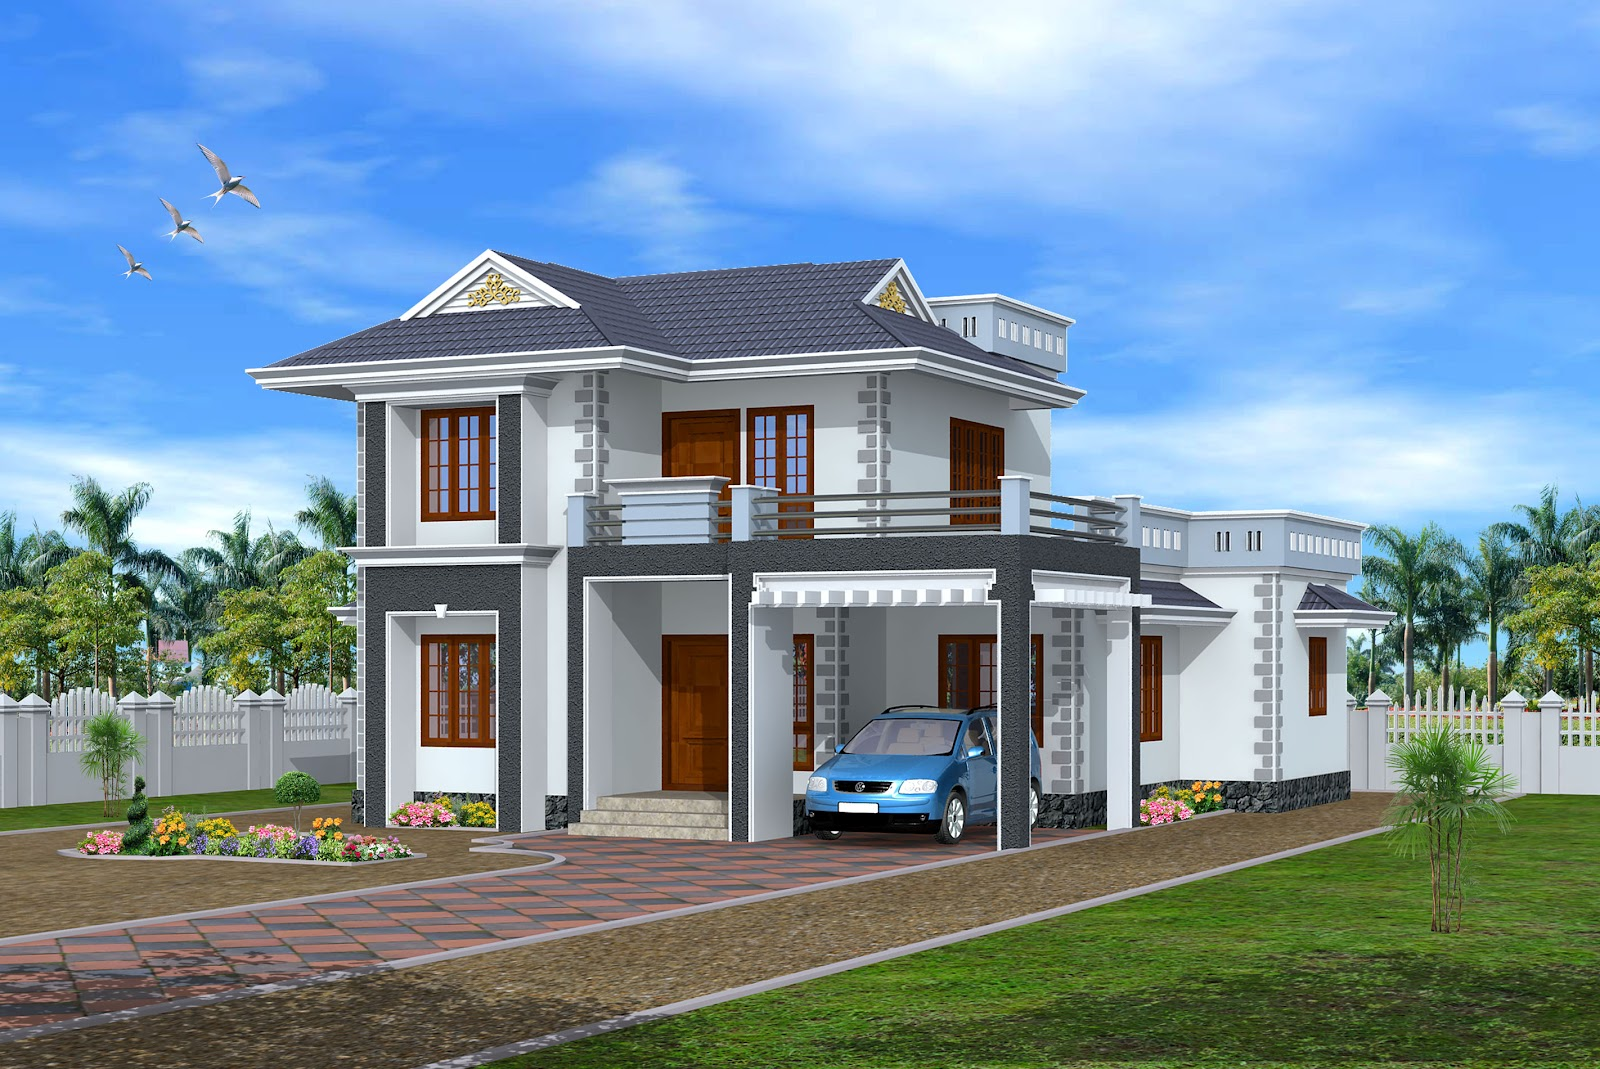 New home designs latest modern homes exterior designs views for Latest house designs